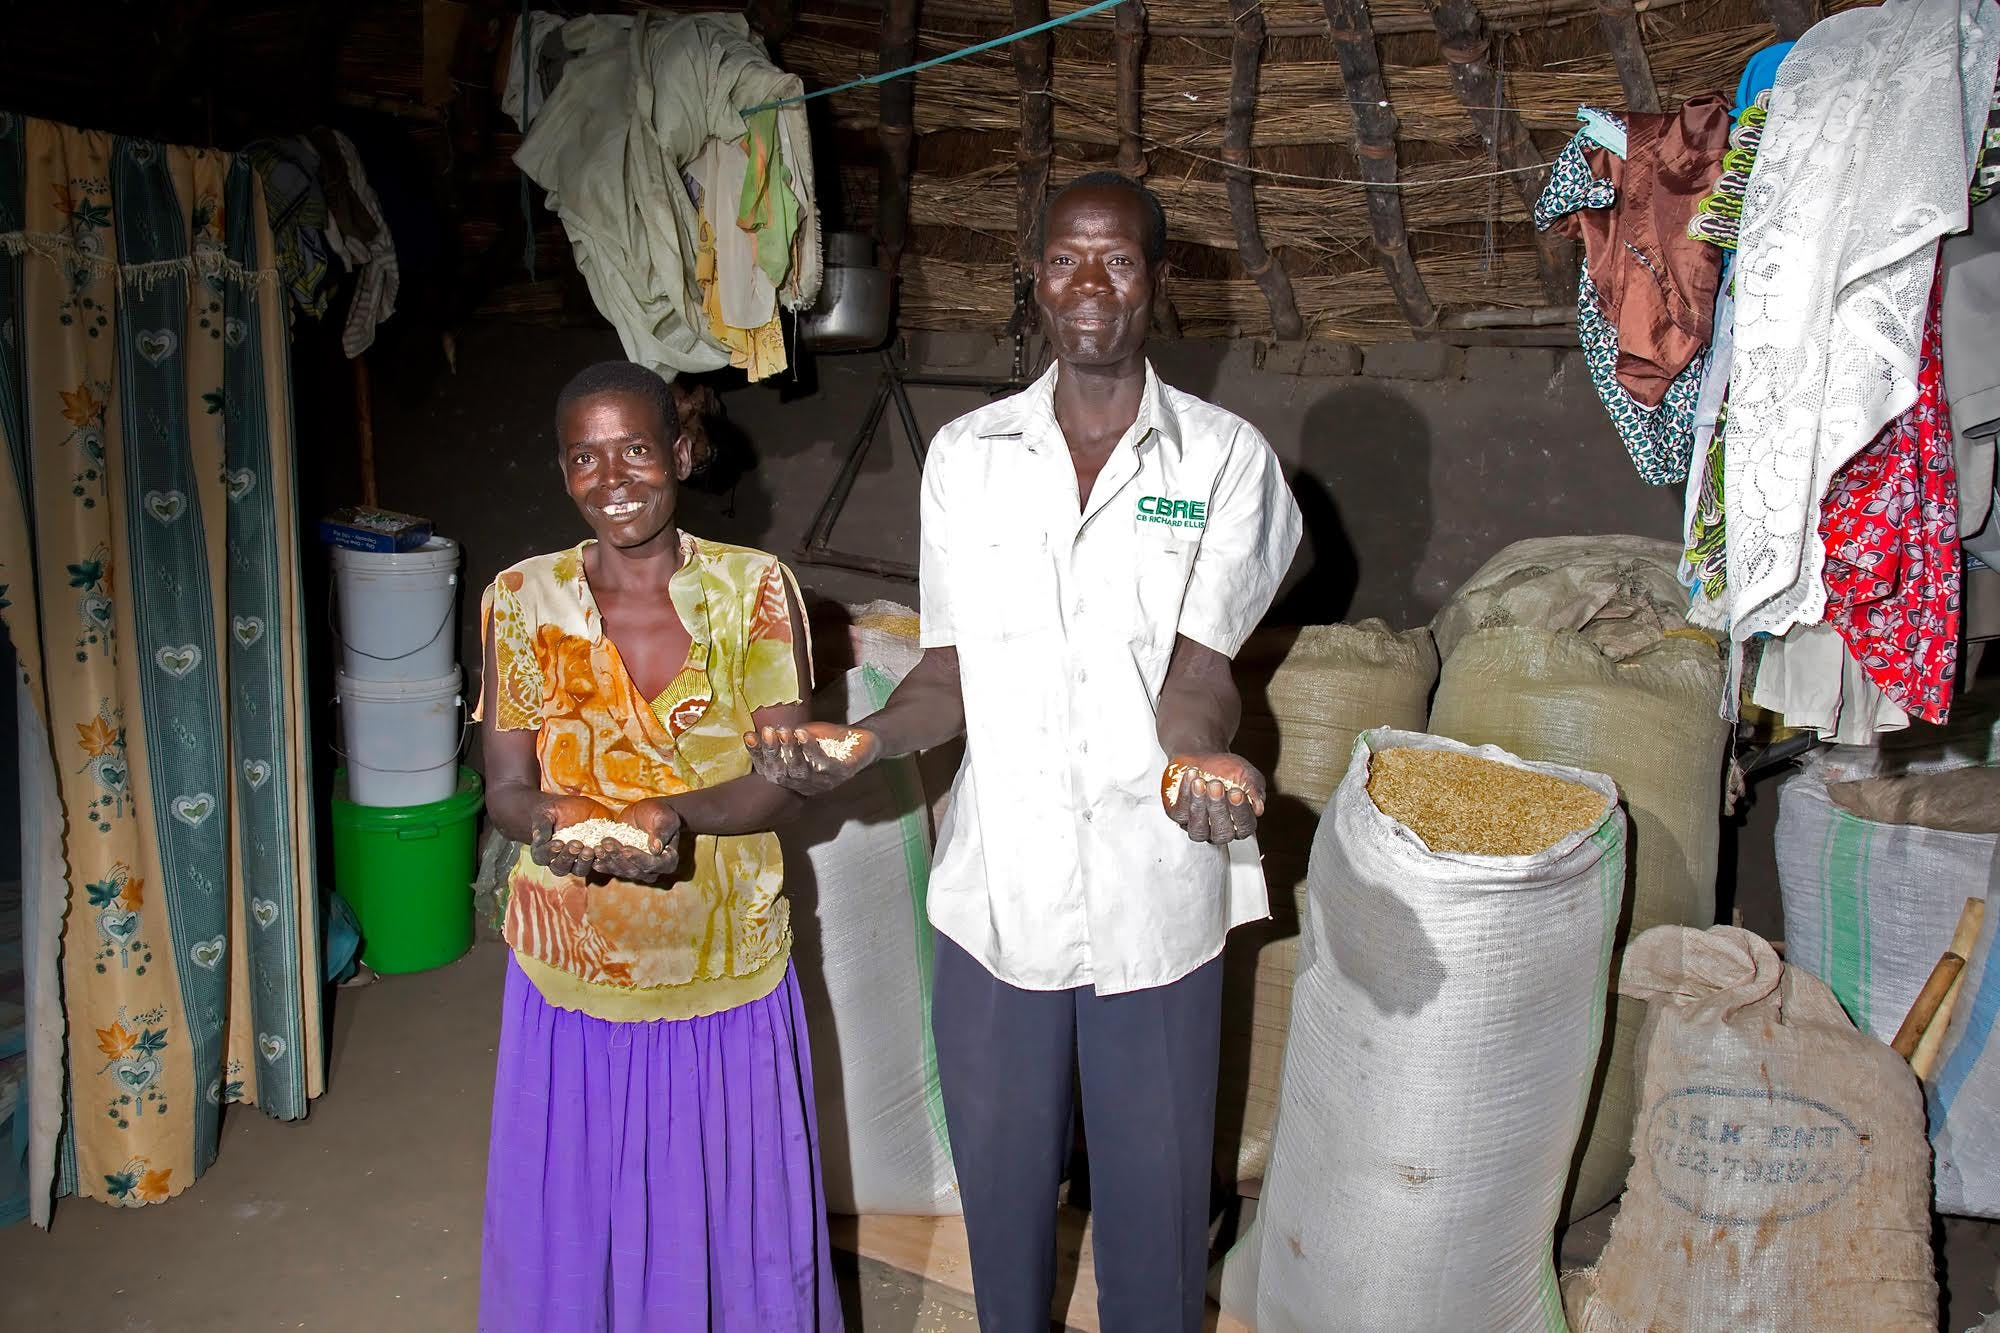 Simon and Mary thrive after agricultural training in Uganda